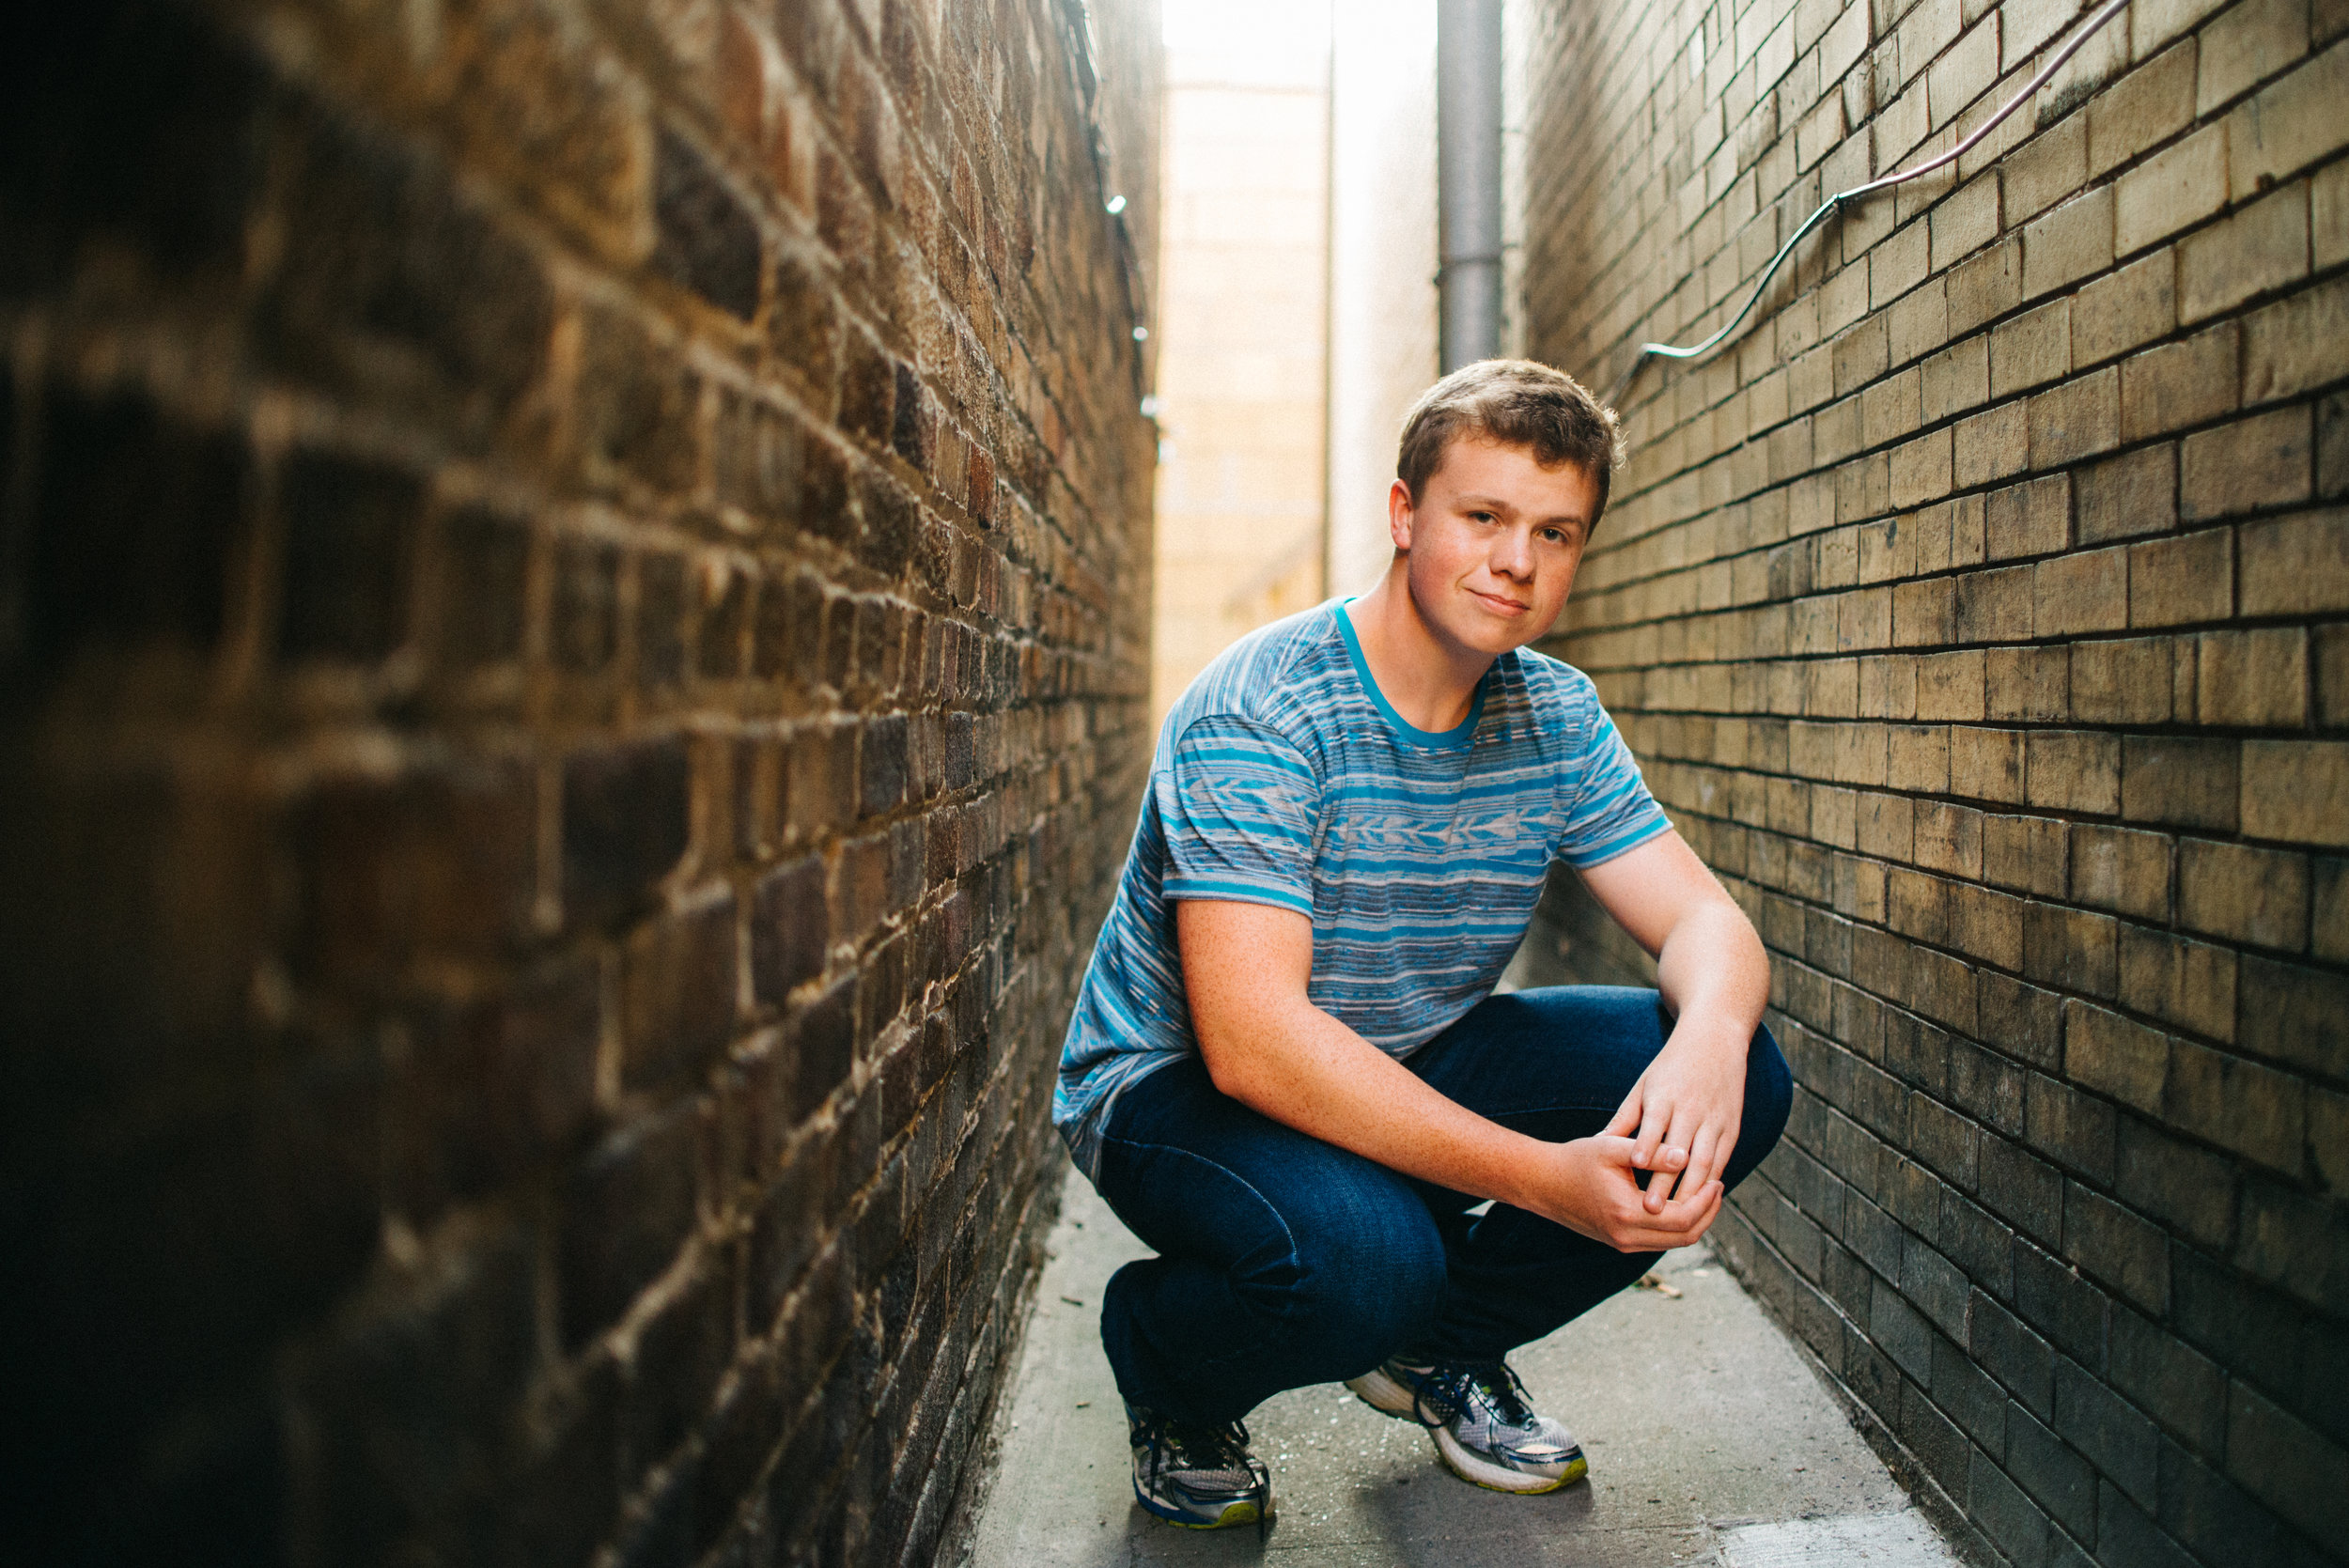 High school senior boy in between brick building in urban setting